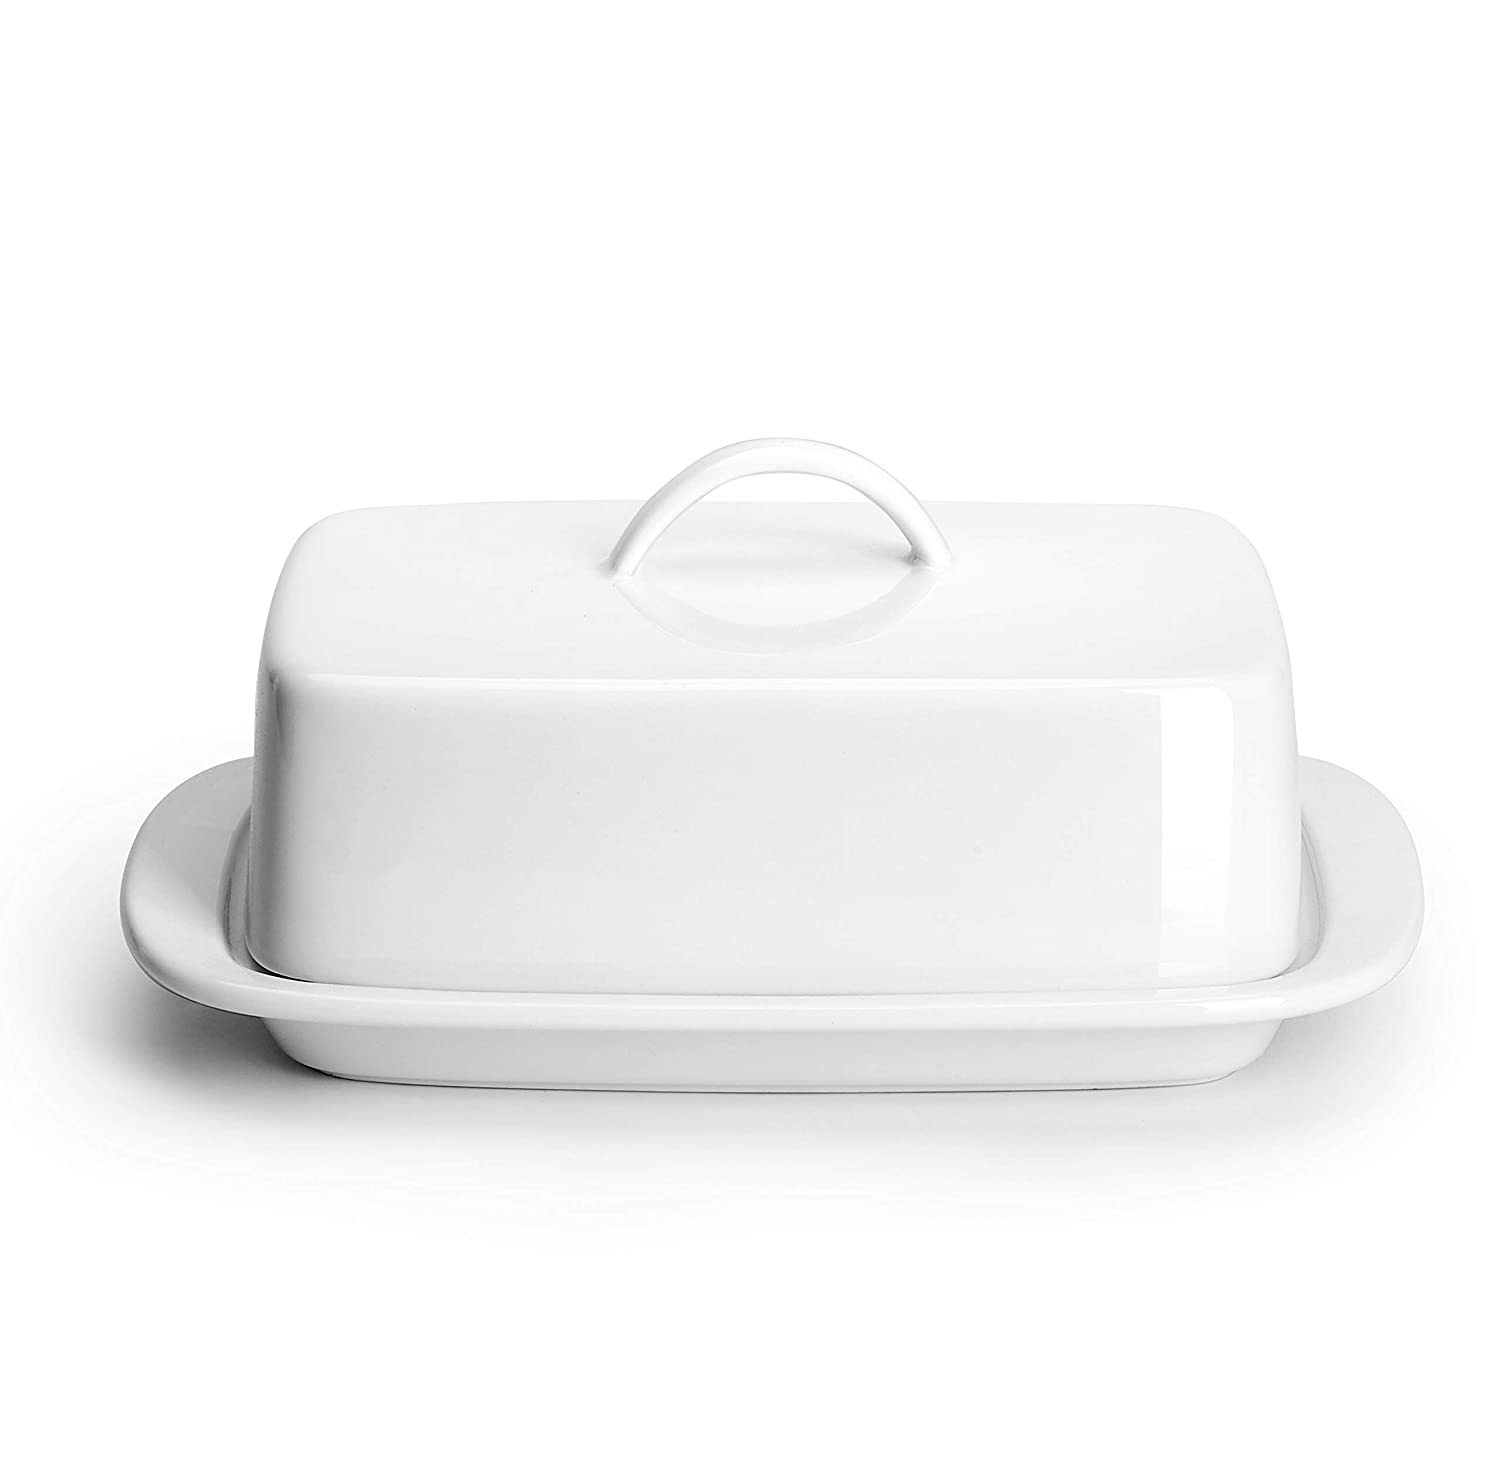 Sweese 312.101 Large Butter Dish with Handle Cover Design - Perfect for 2 Sticks of Butter and 8oz Butter - Porcelain, White